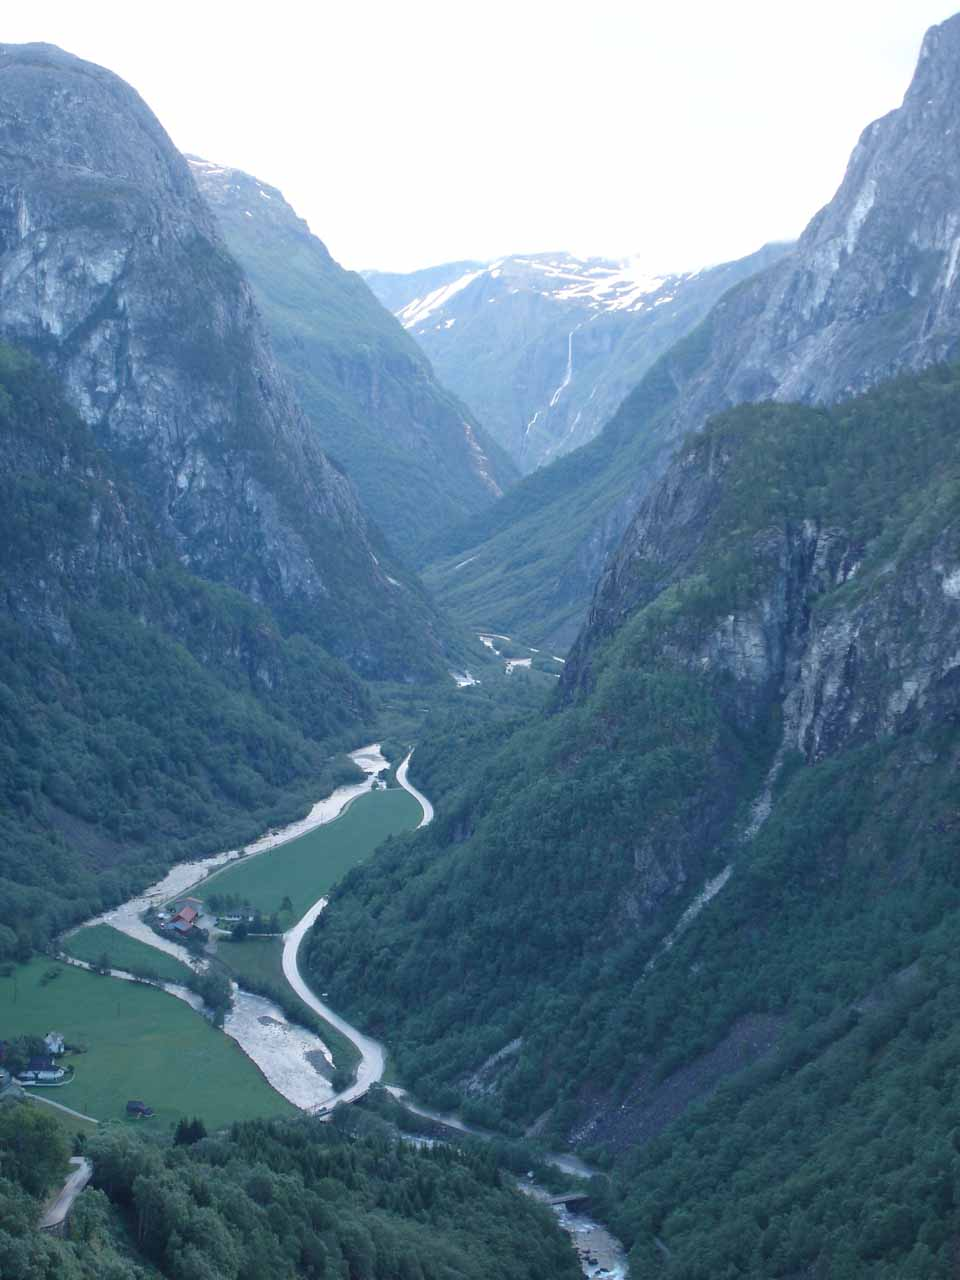 Not far to the northeast of Tvindefossen is the Stalheim Hotel and the serpentine road known as the Stalheimskleiva, which looks right into the steep Nærøydalen Valley shown here